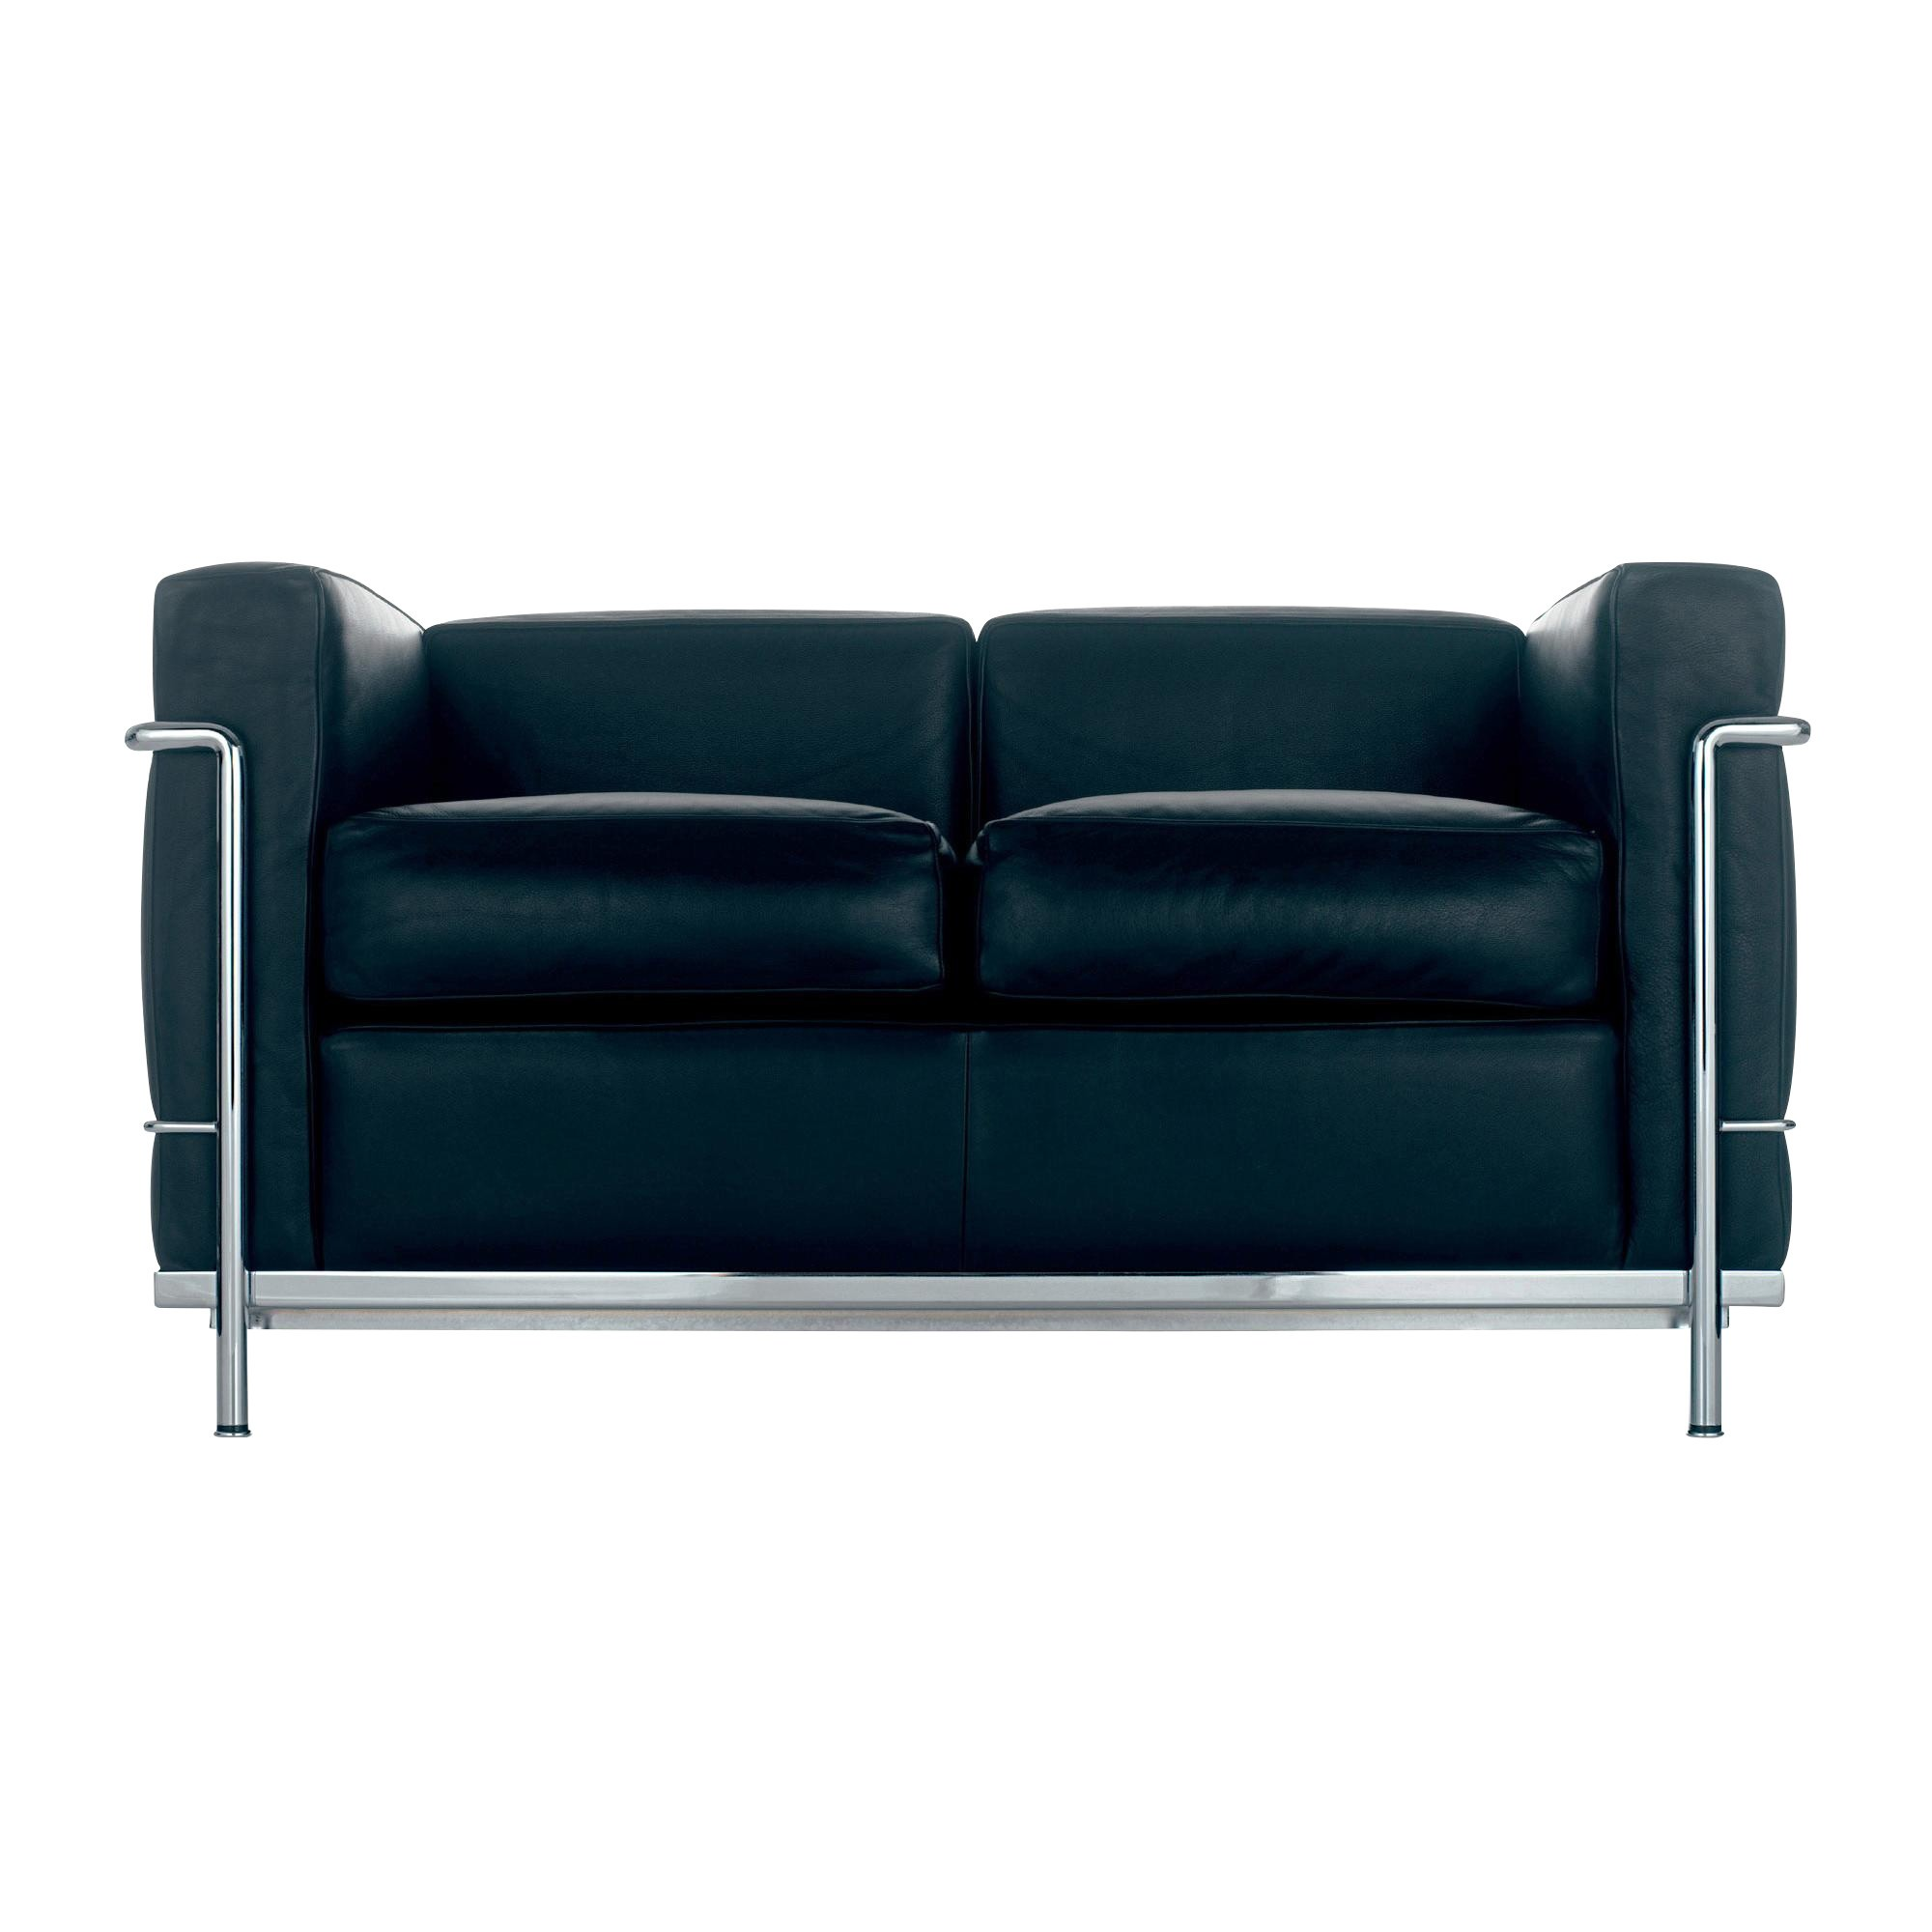 Cassina Le Corbusier Lc2 2 Sitzer Sofa Ambientedirect